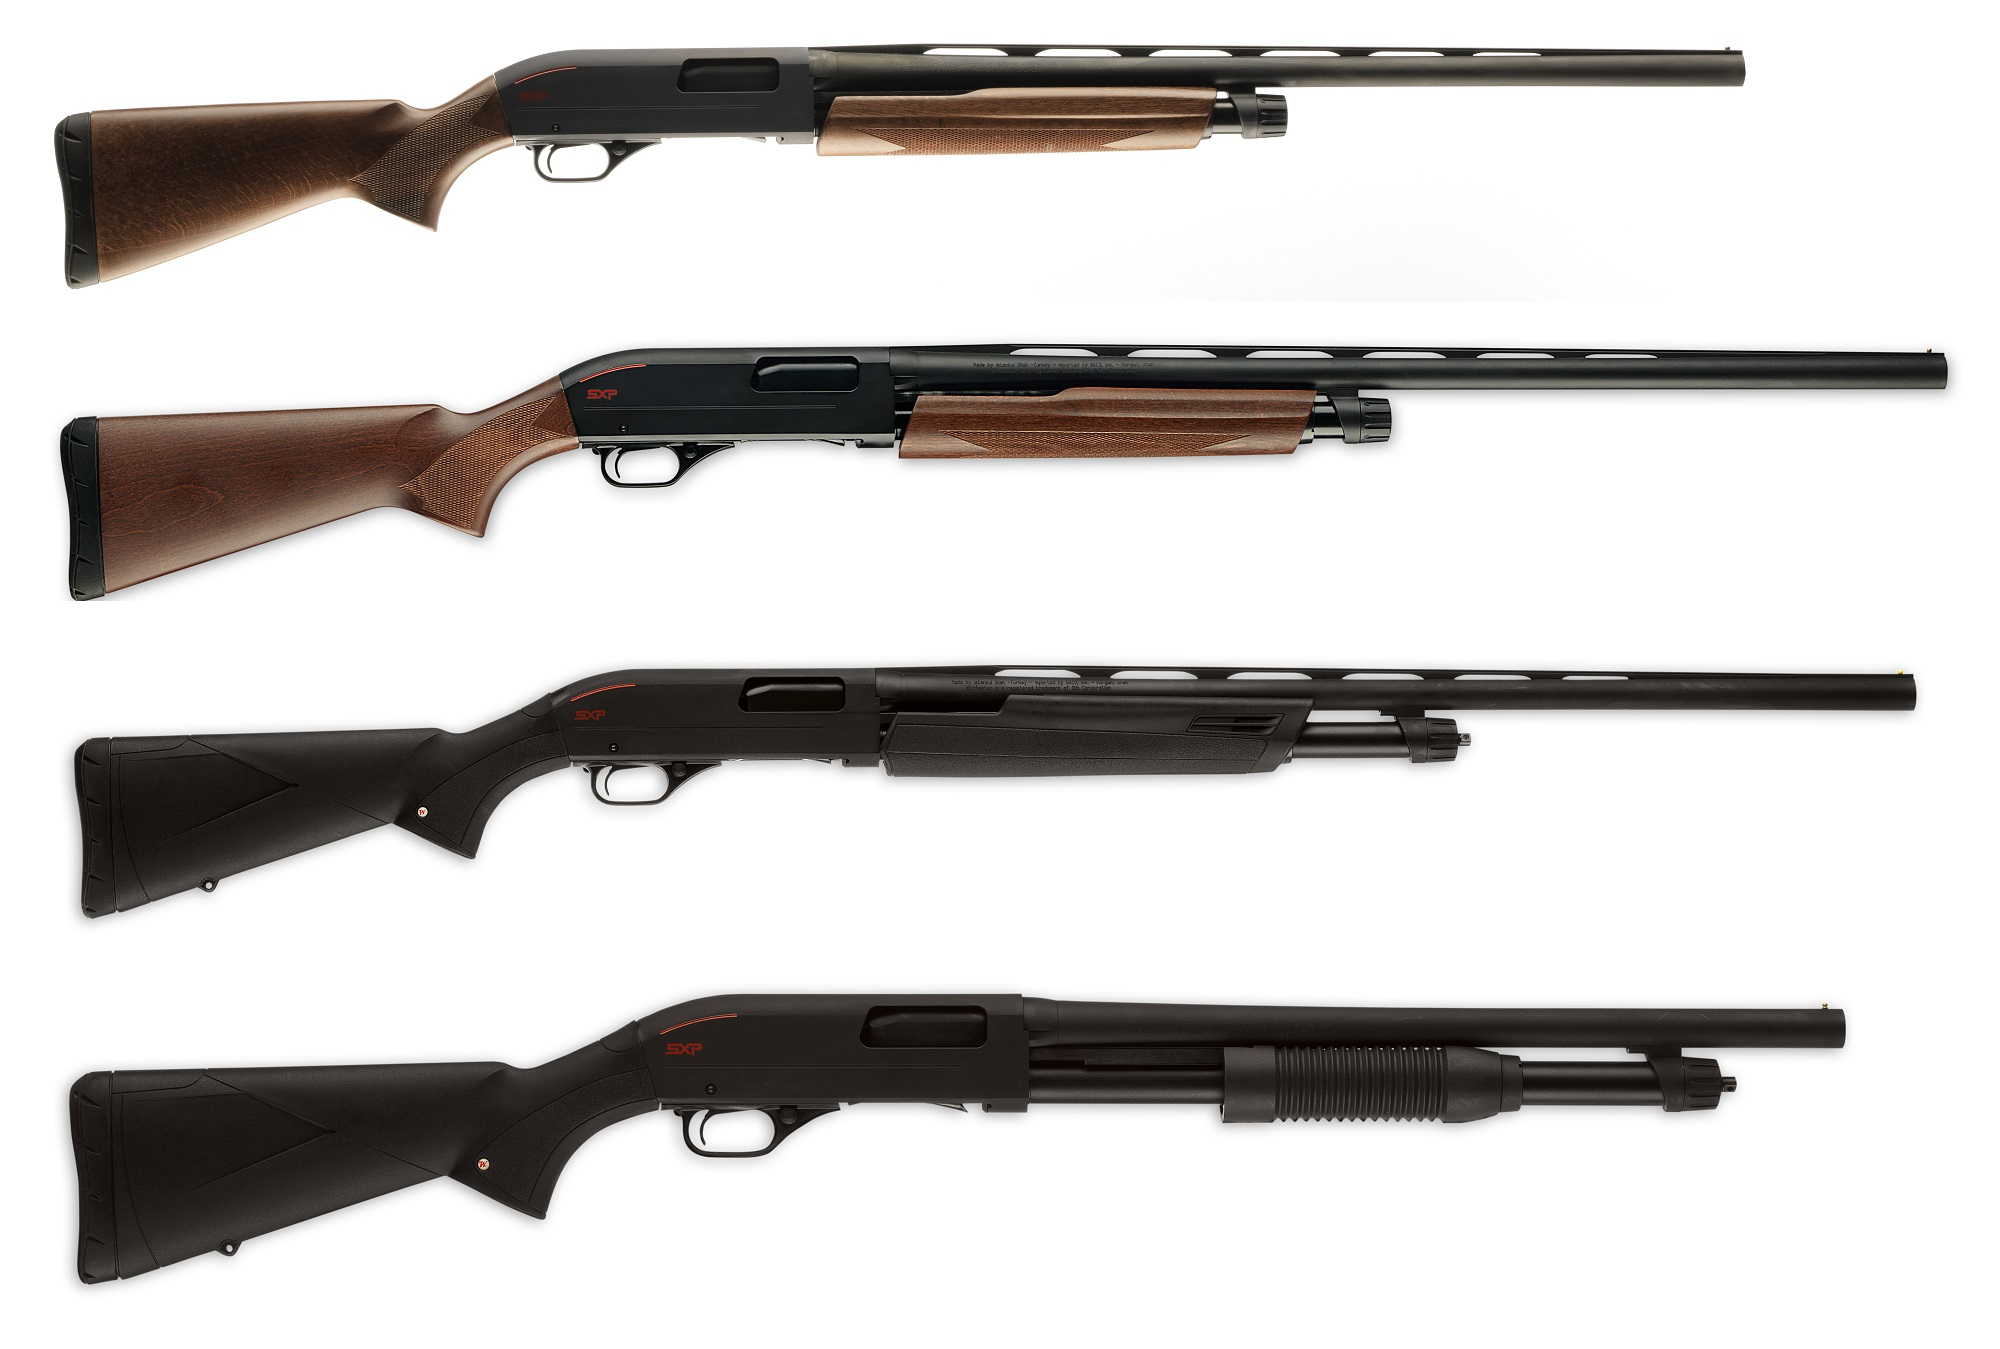 Winchester SXP pump-action - Winchester - all4shooters.com